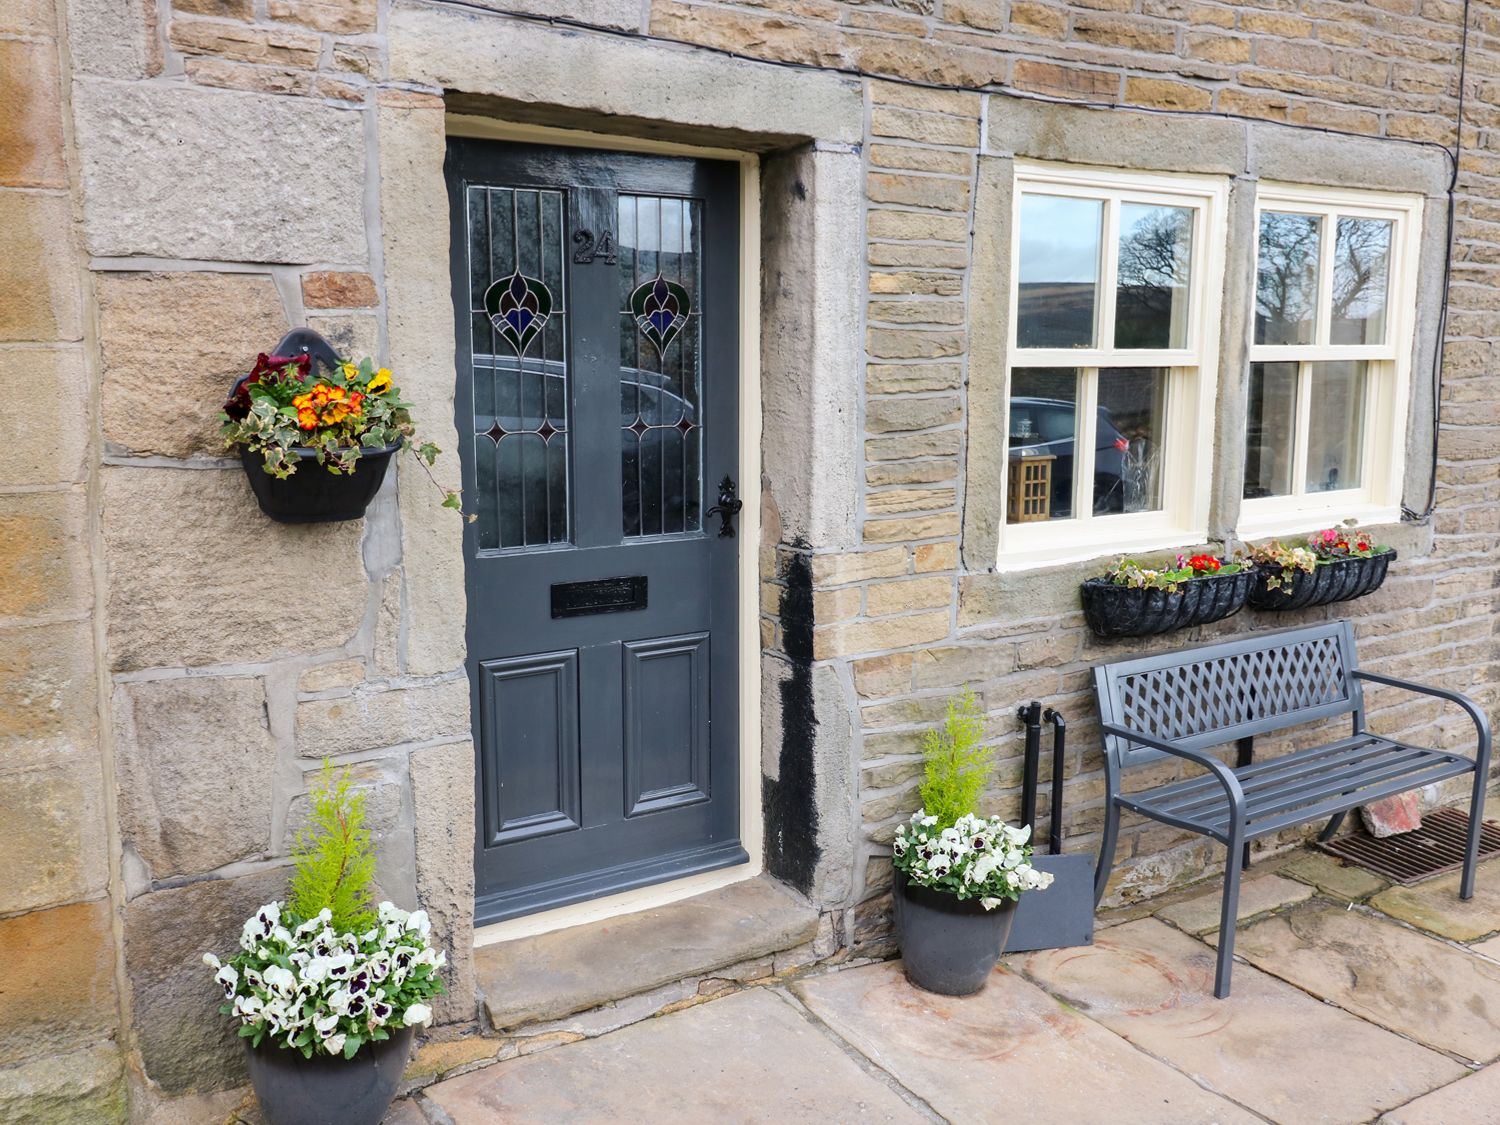 24 Main Street - Yorkshire Dales - 997064 - photo 1